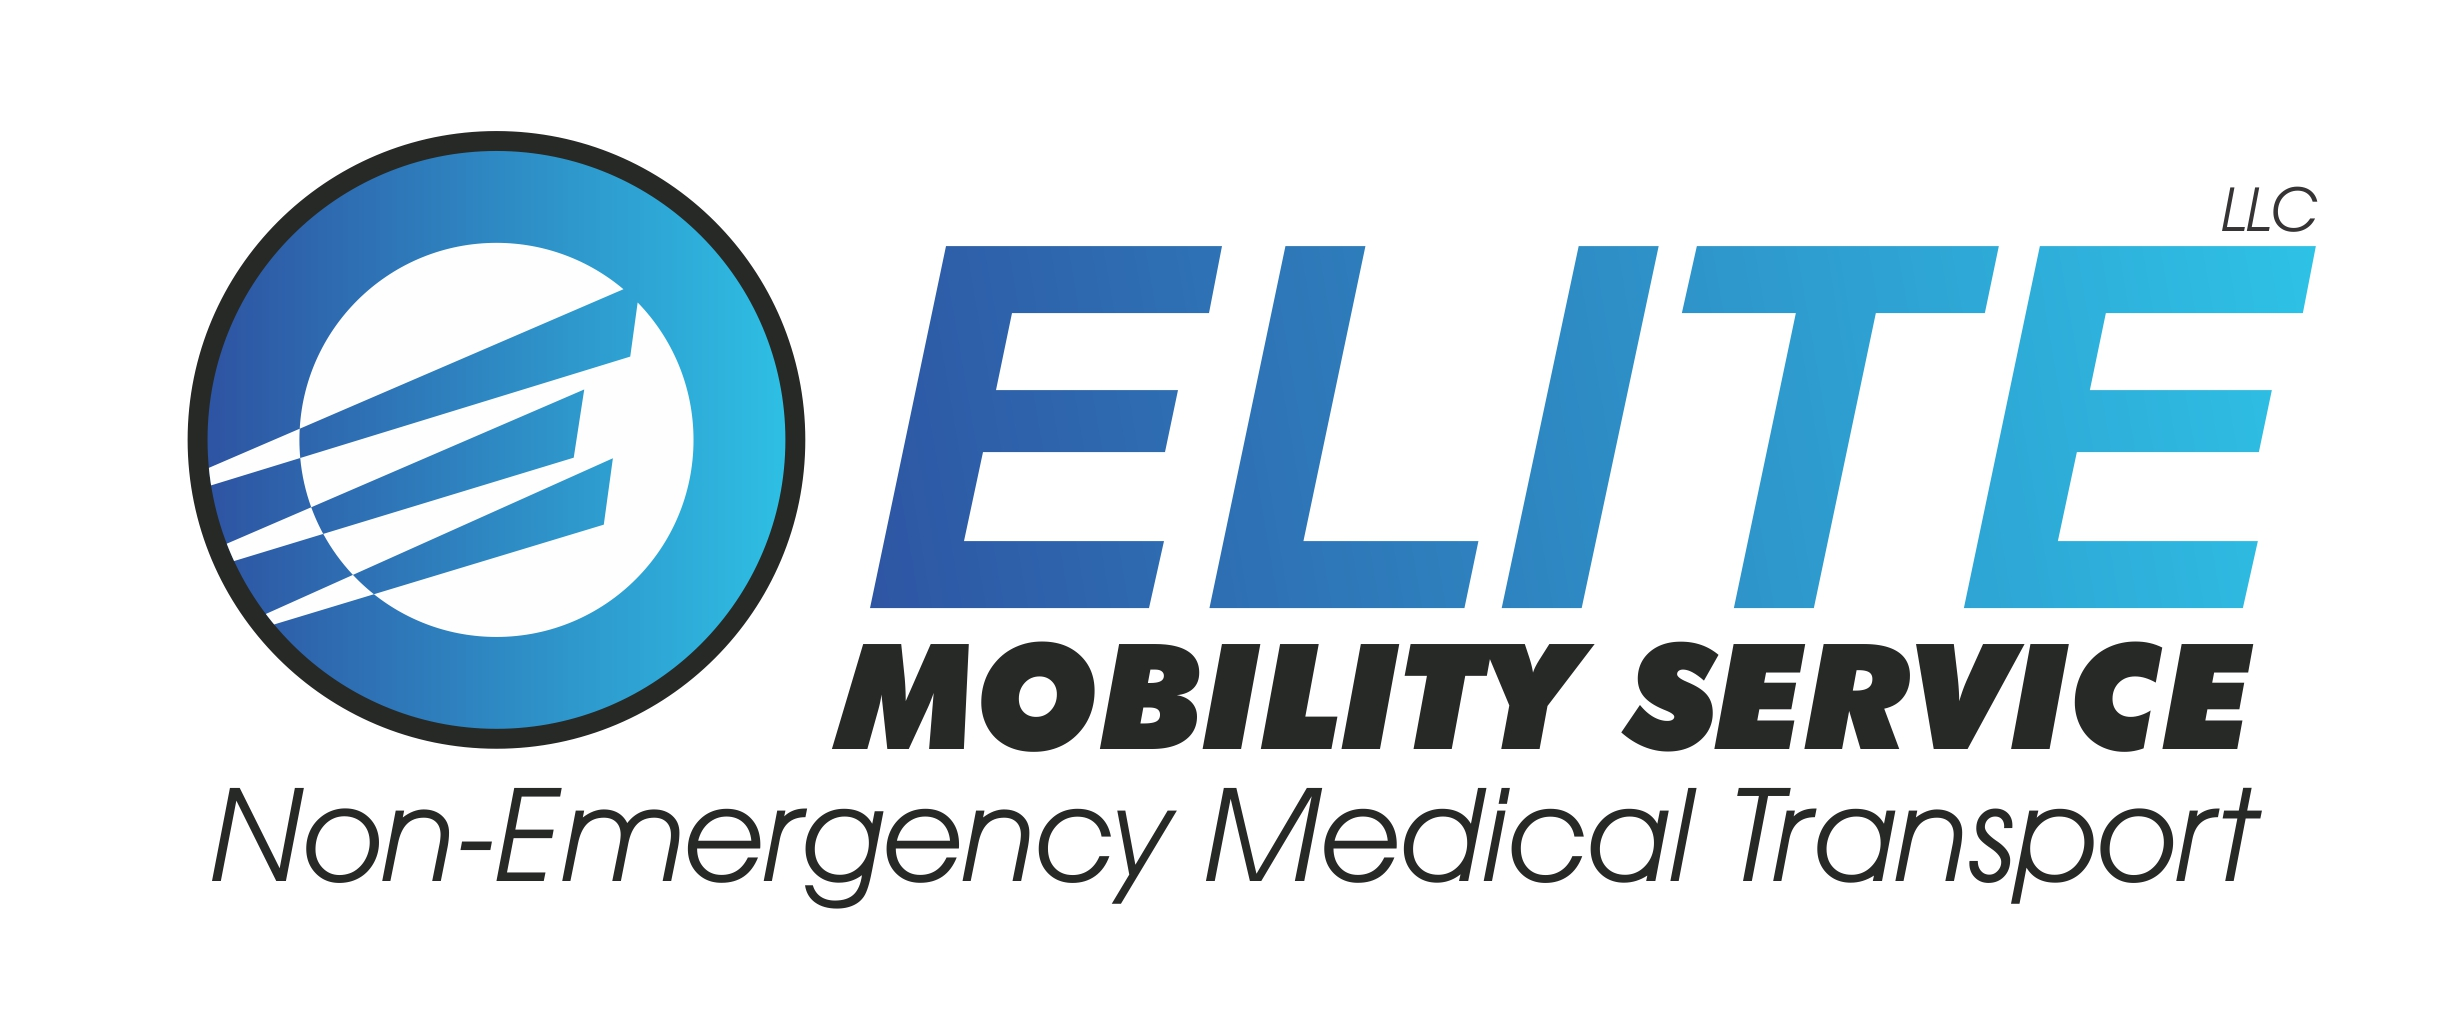 Elite Mobility Service LLC begins disabled transportation in the Coachella Valley